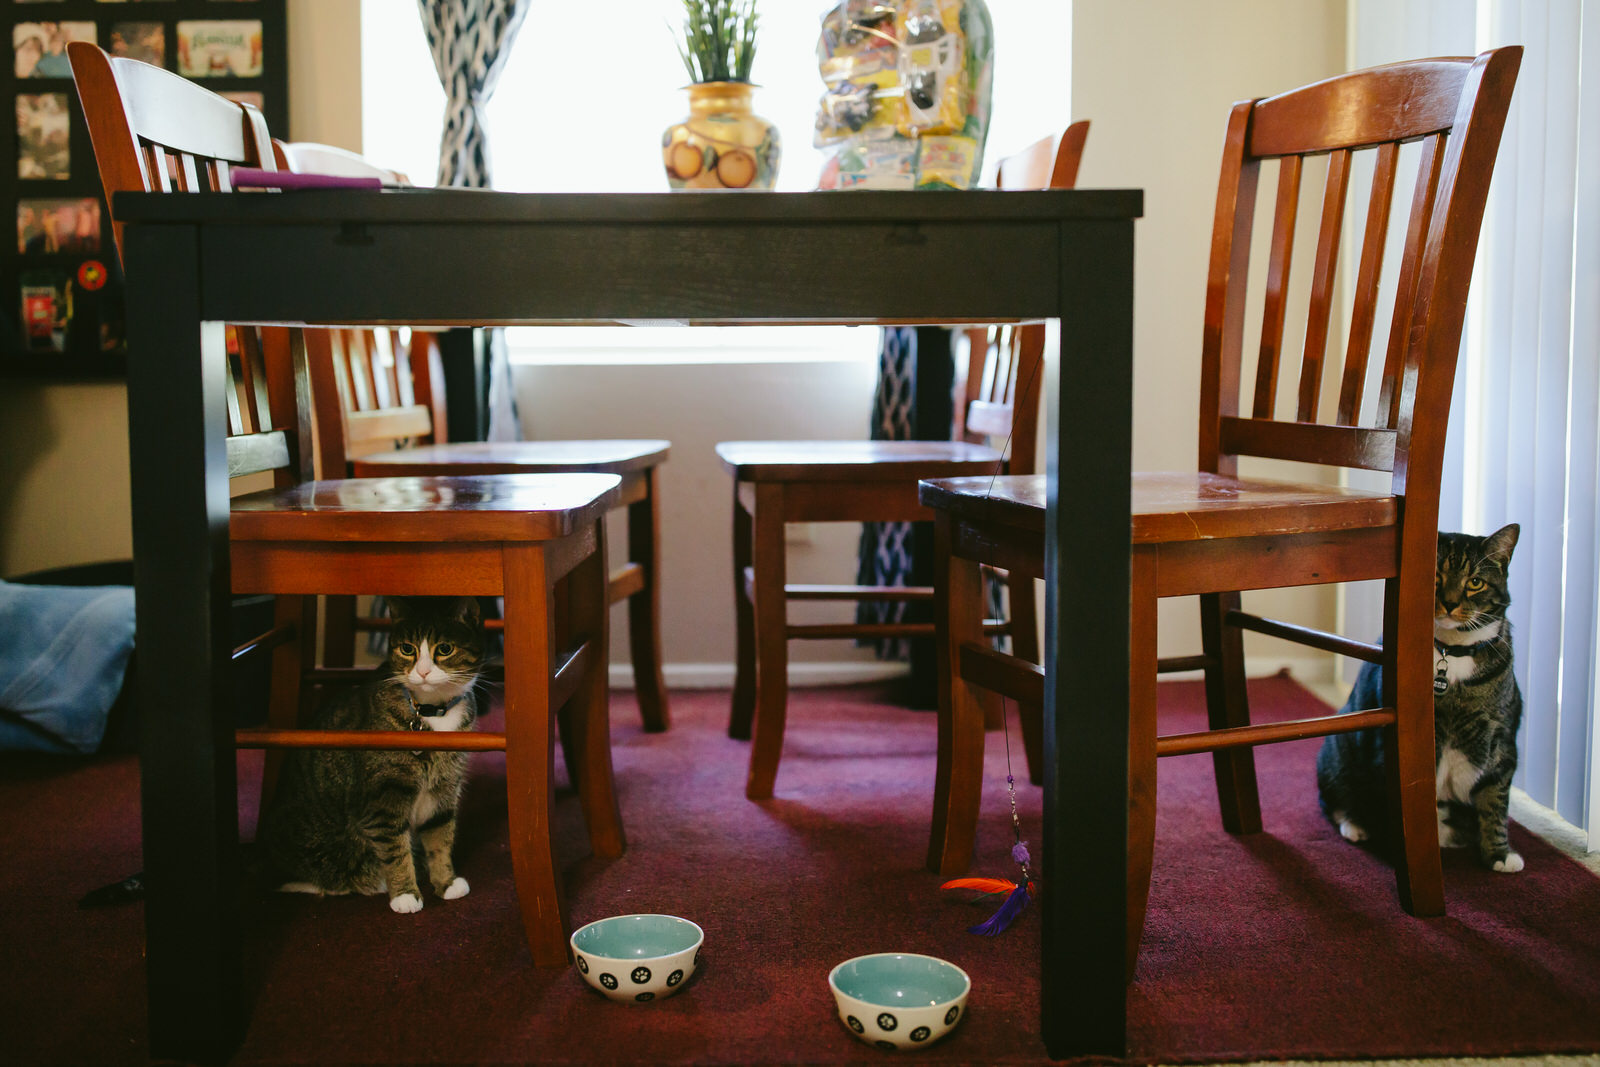 orlando-engagement-session-epcot-day-in-the-life-home-cats-kitties-tiny-house-photo.jpg